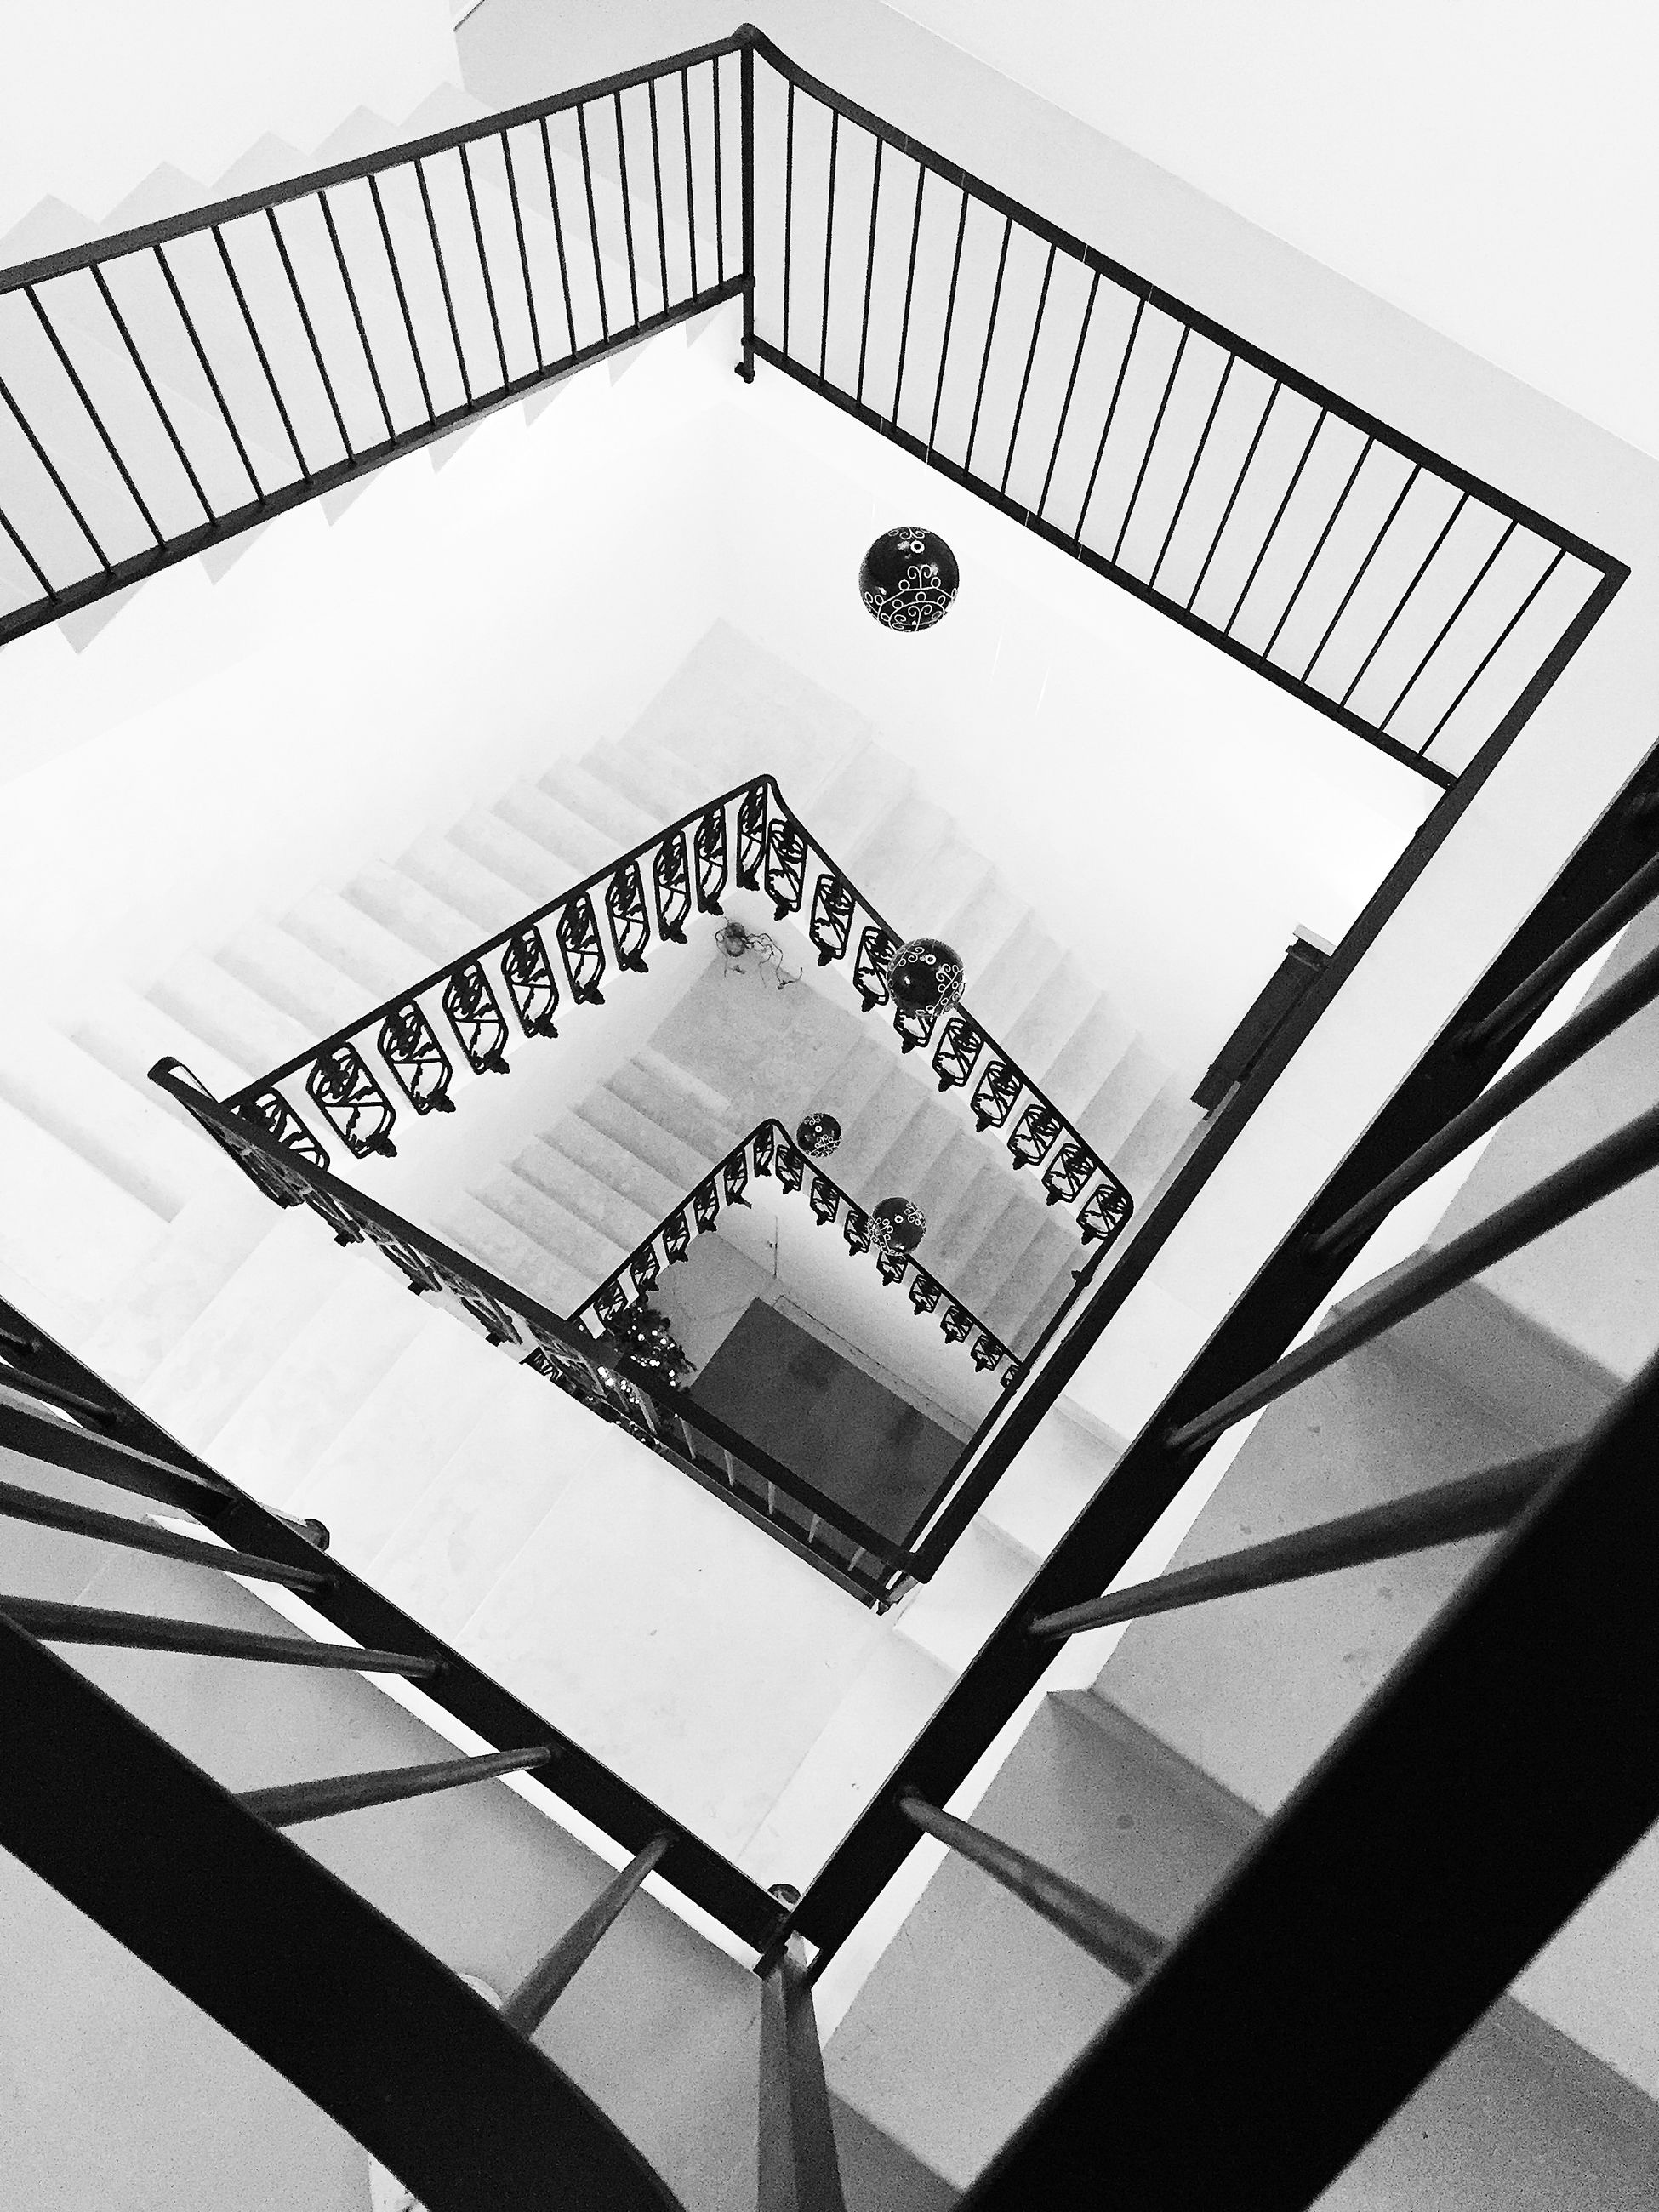 built structure, architecture, low angle view, railing, indoors, staircase, modern, steps, steps and staircases, connection, clear sky, day, no people, building, building exterior, metal, pattern, text, design, sky